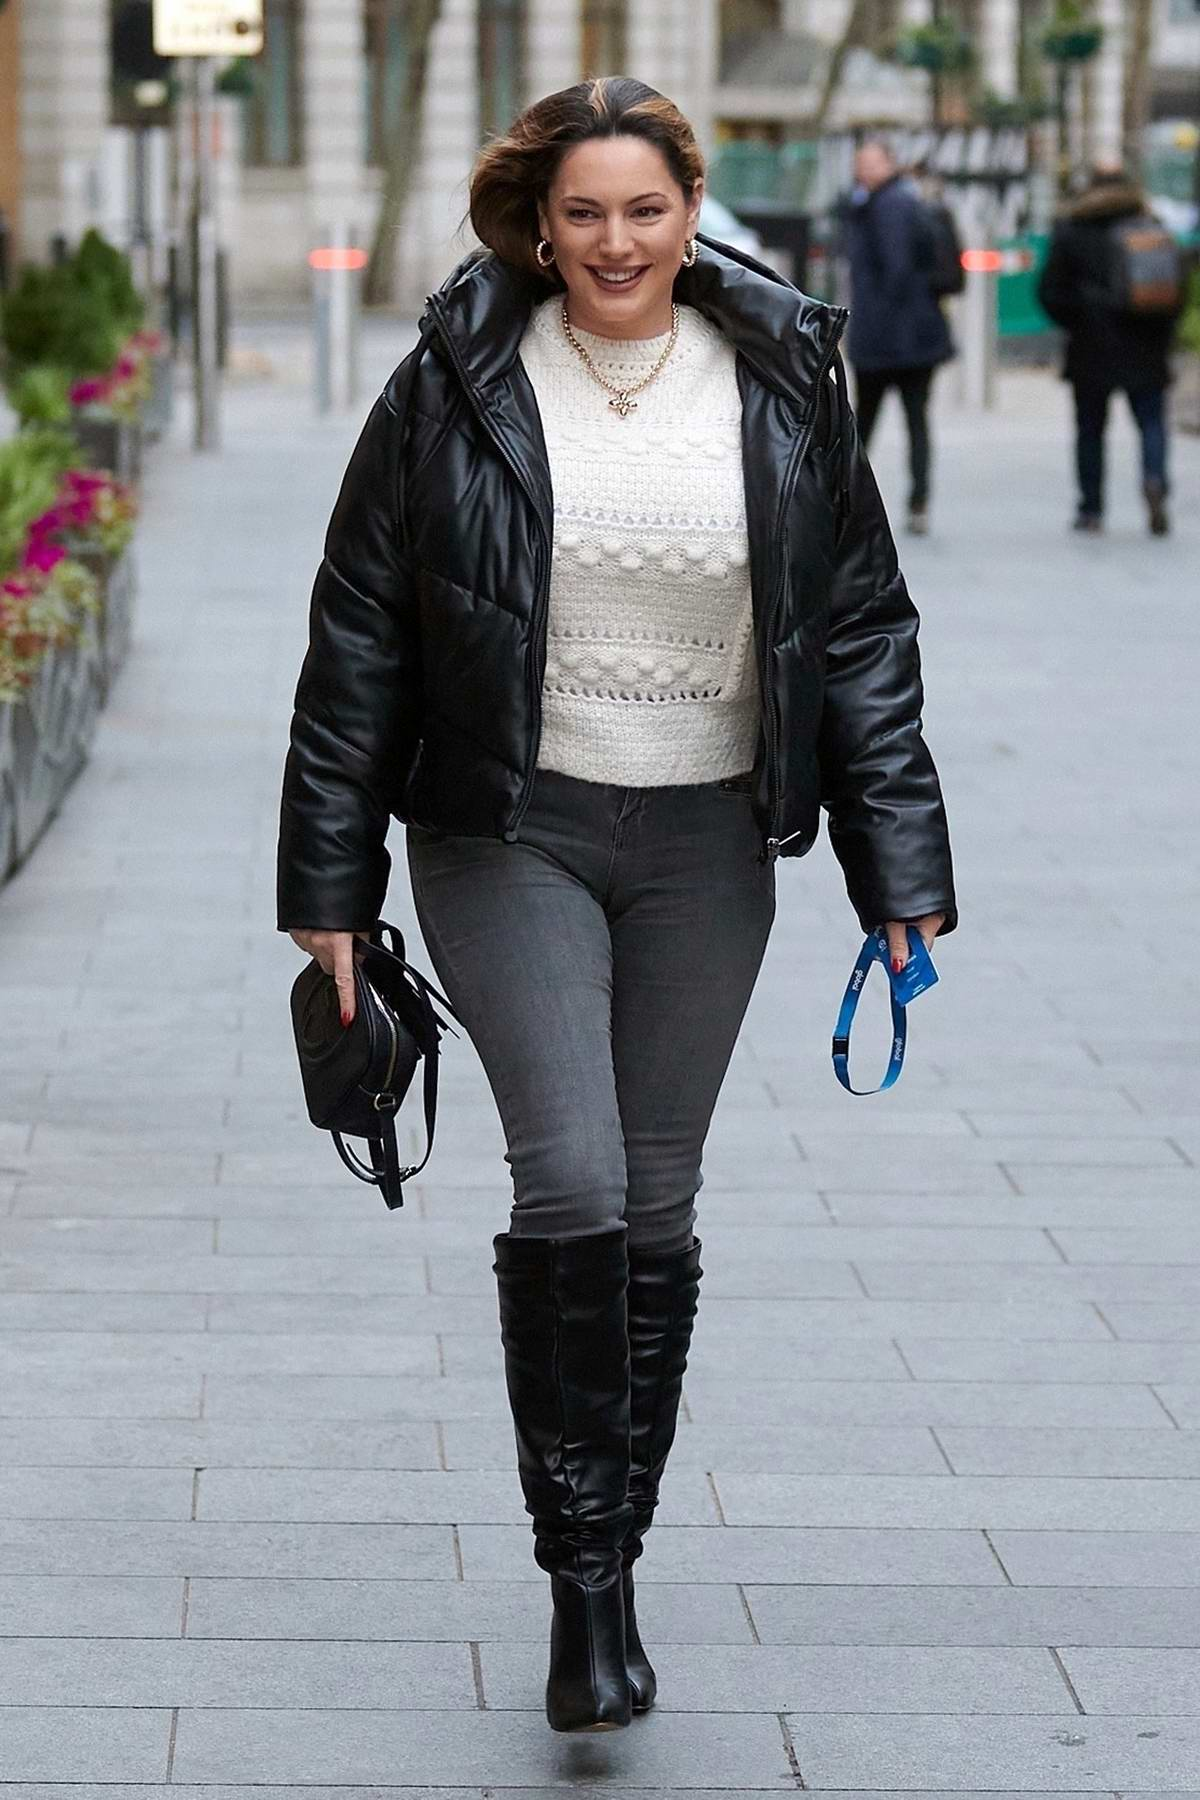 Kelly Brook rocks a black puffy jacket with tight jeans and knee-high boots as she arrives at Heart radio in London, UK